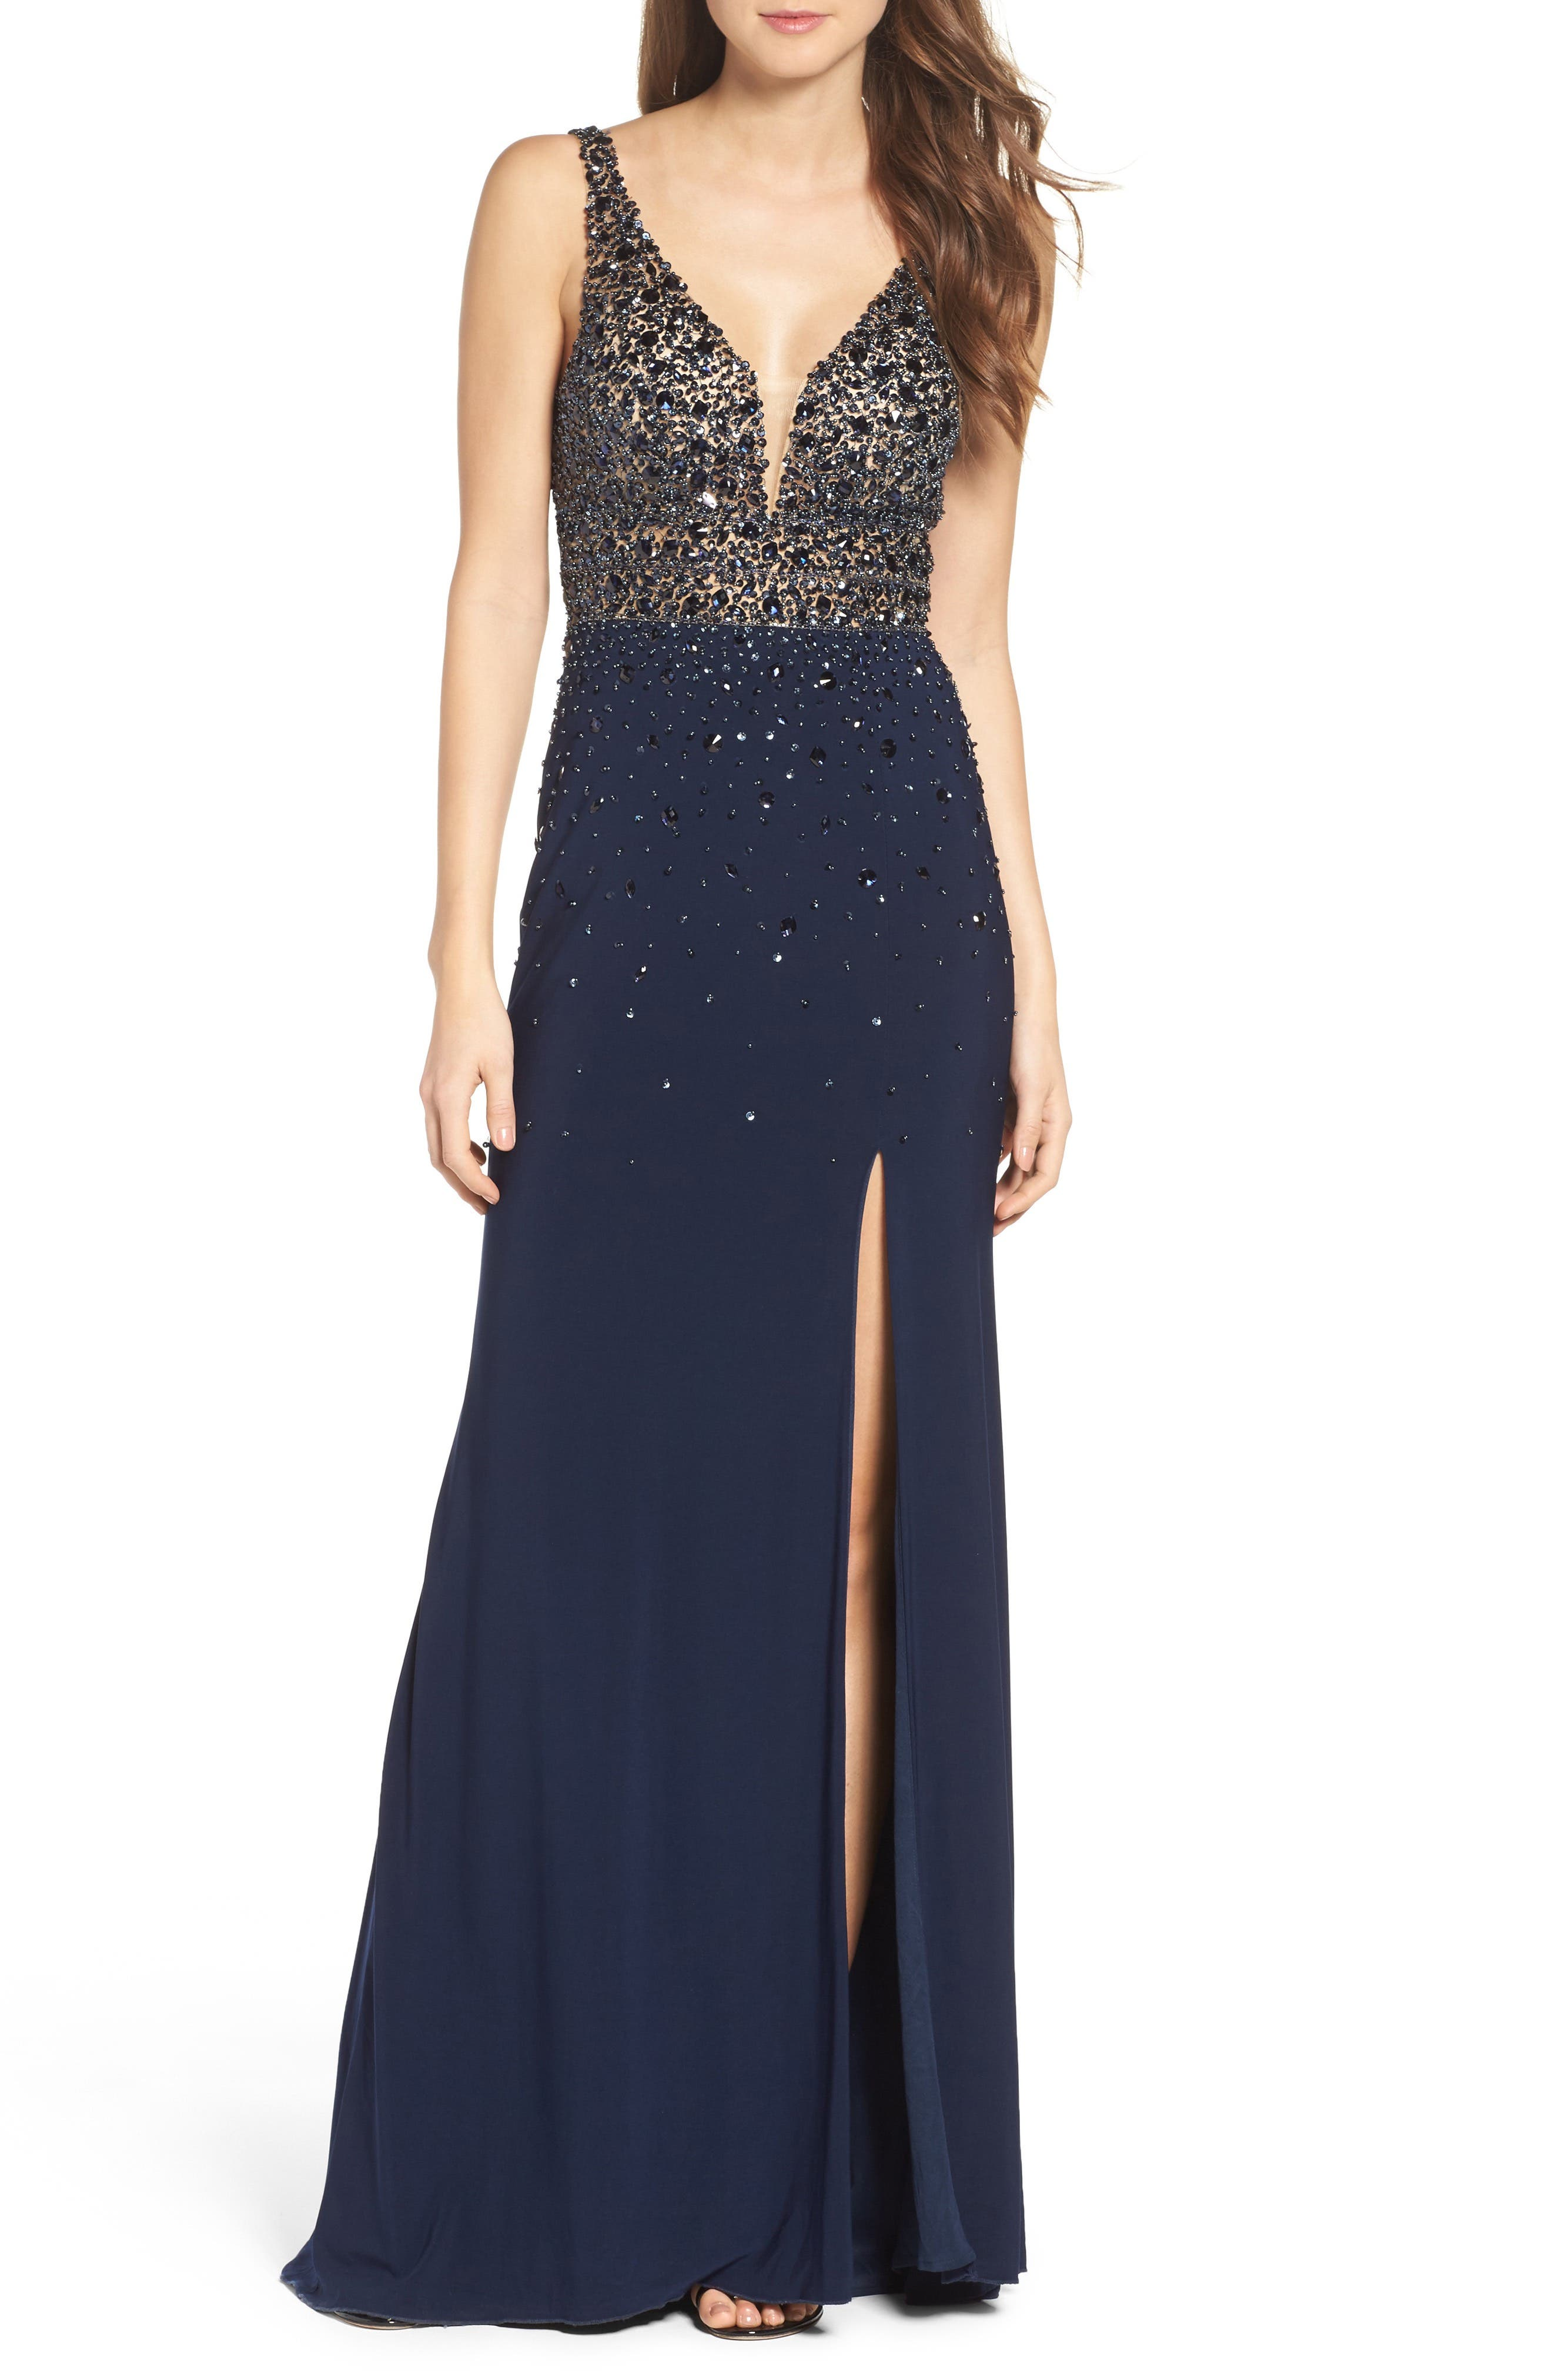 Main Image - Sean Collection Embellished Sleeveless Gown